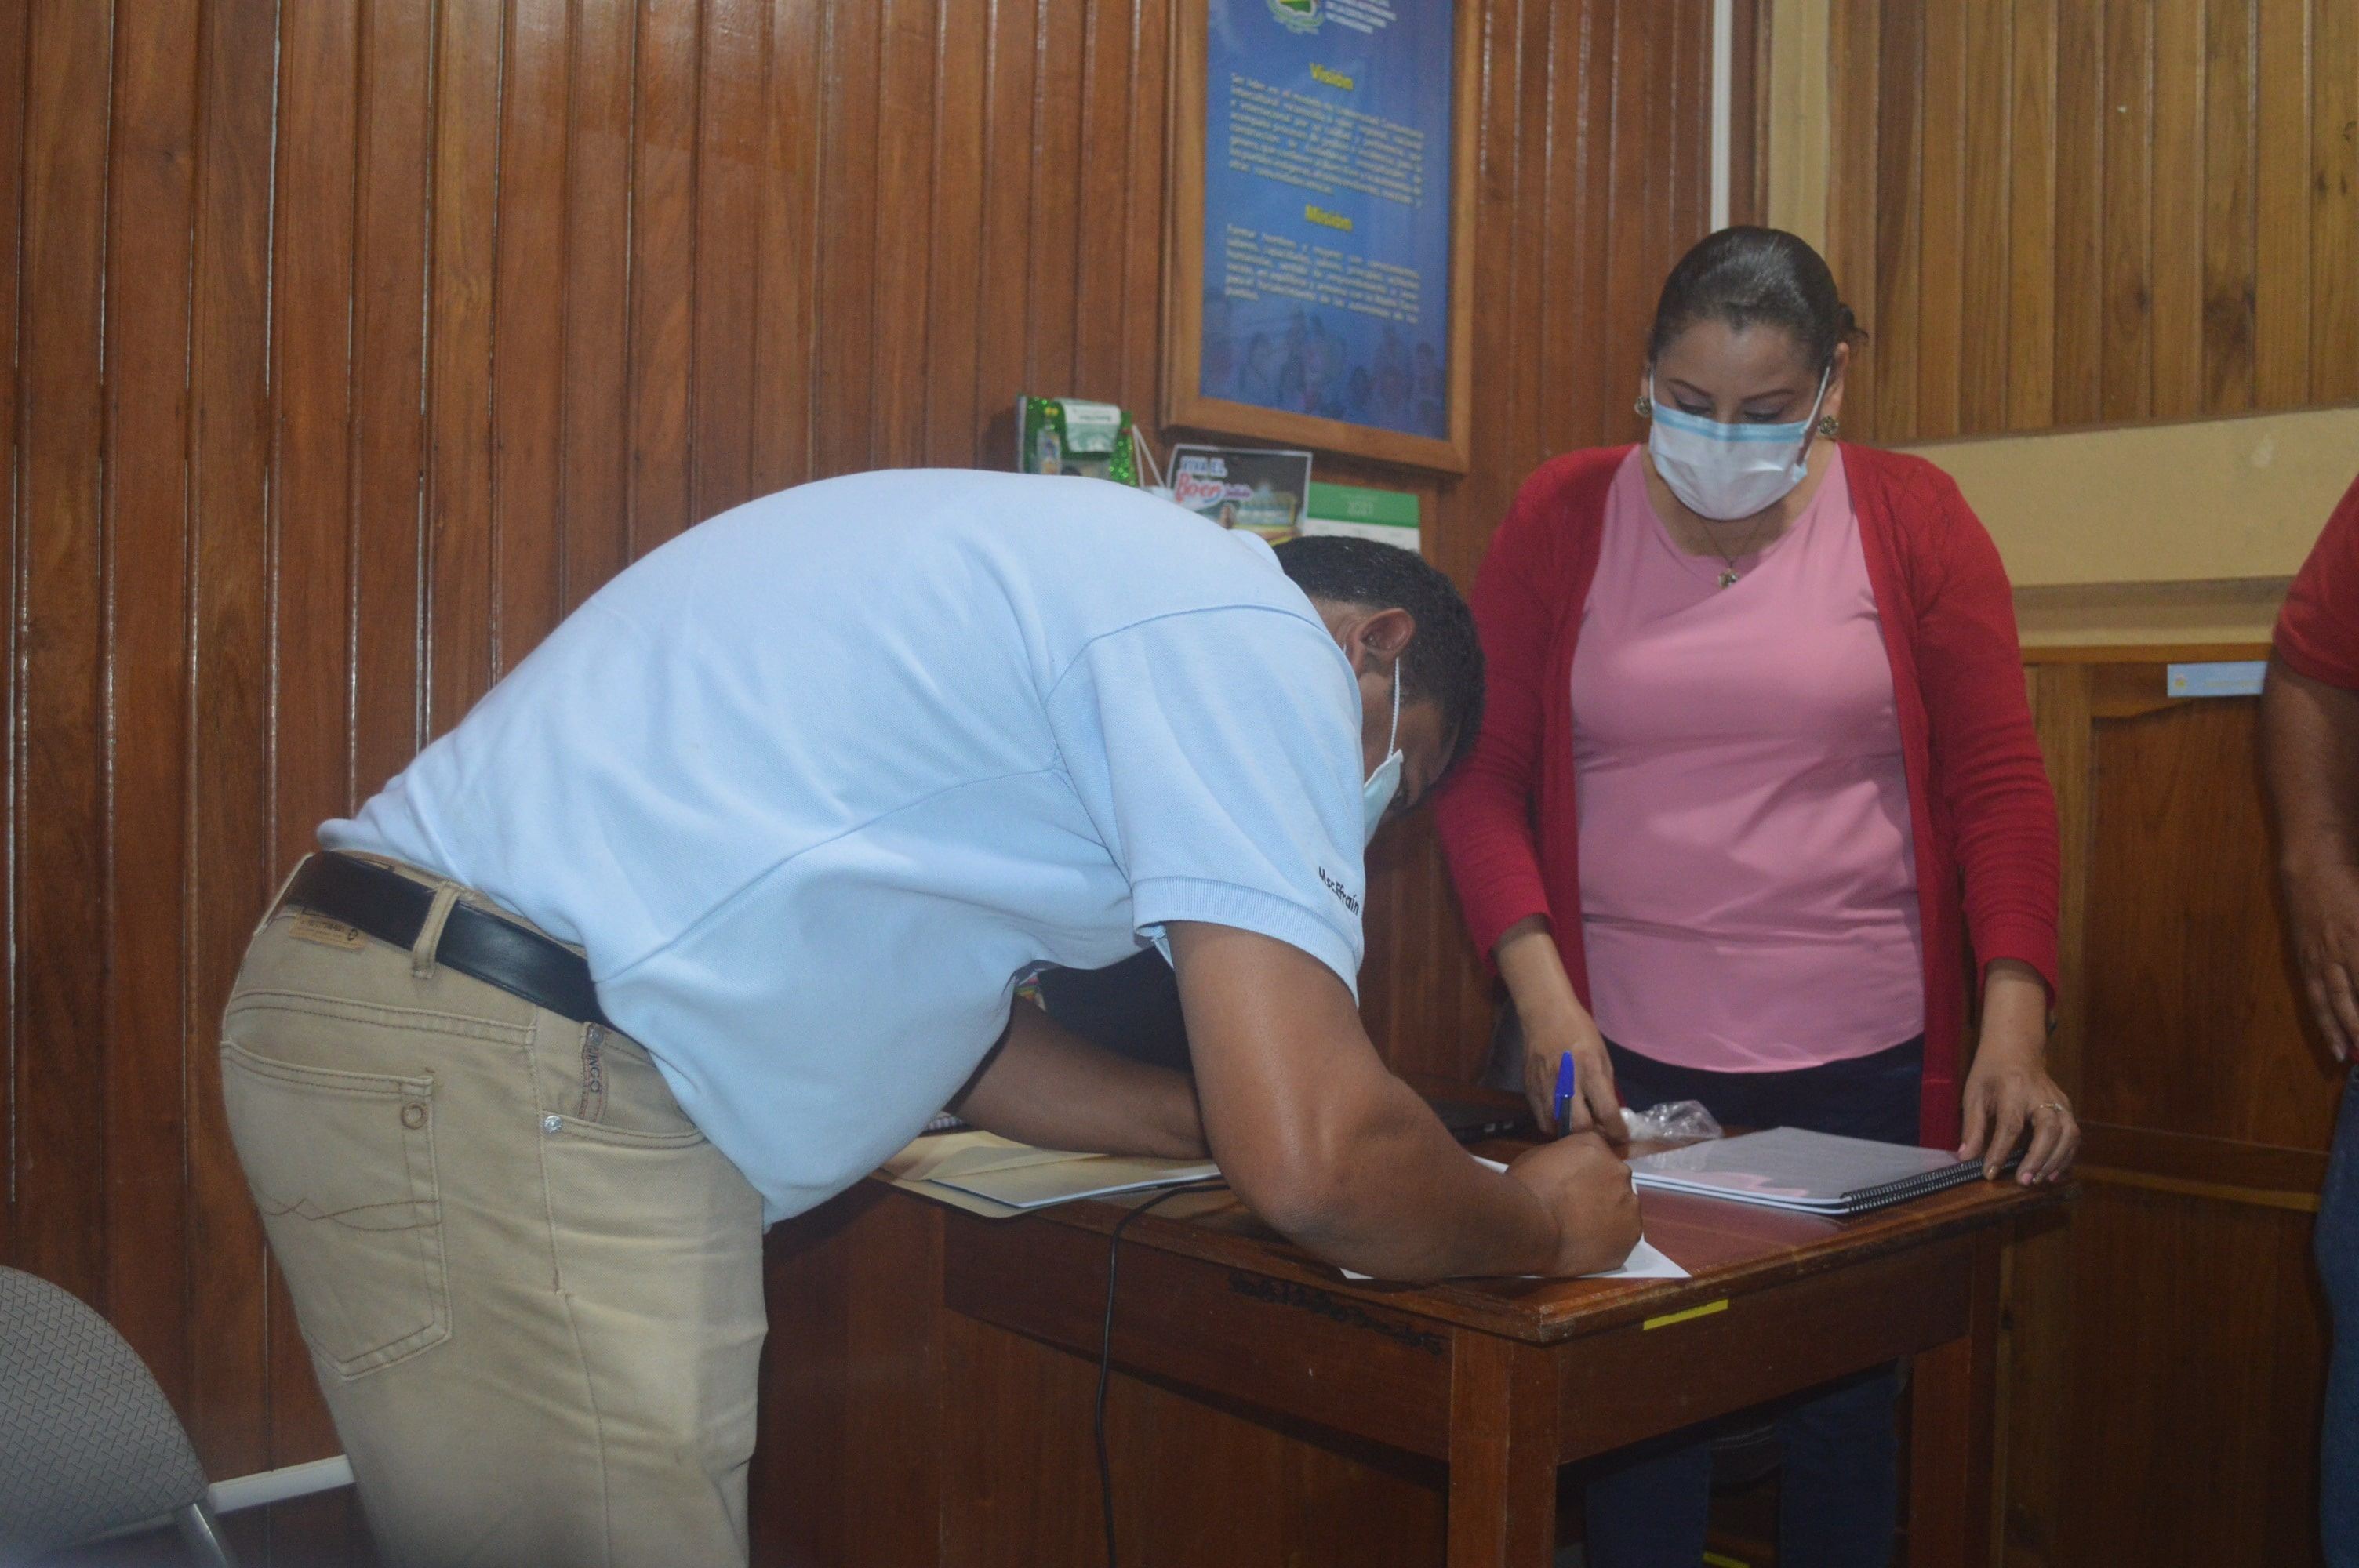 Registration of election candidates in URACCAN campus Las Minas